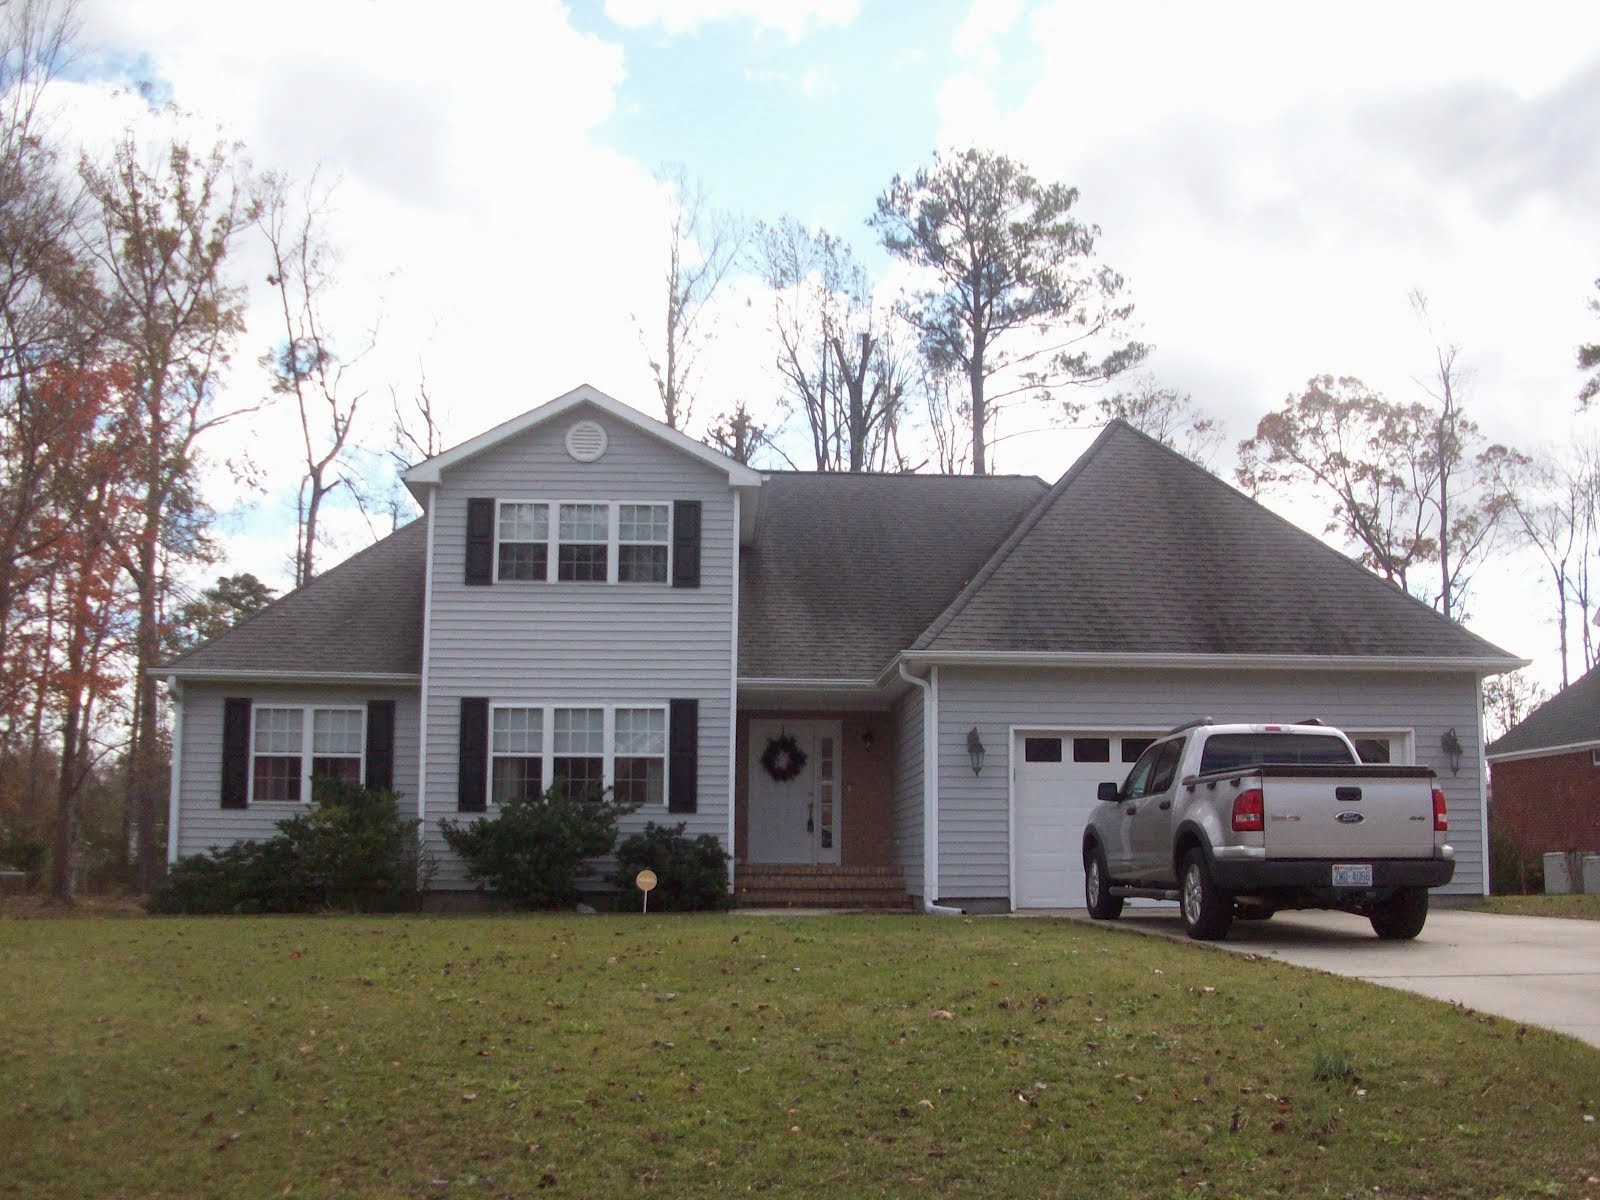 New bern nc real estate by sonja babic january 2012 for Custom homes new bern nc